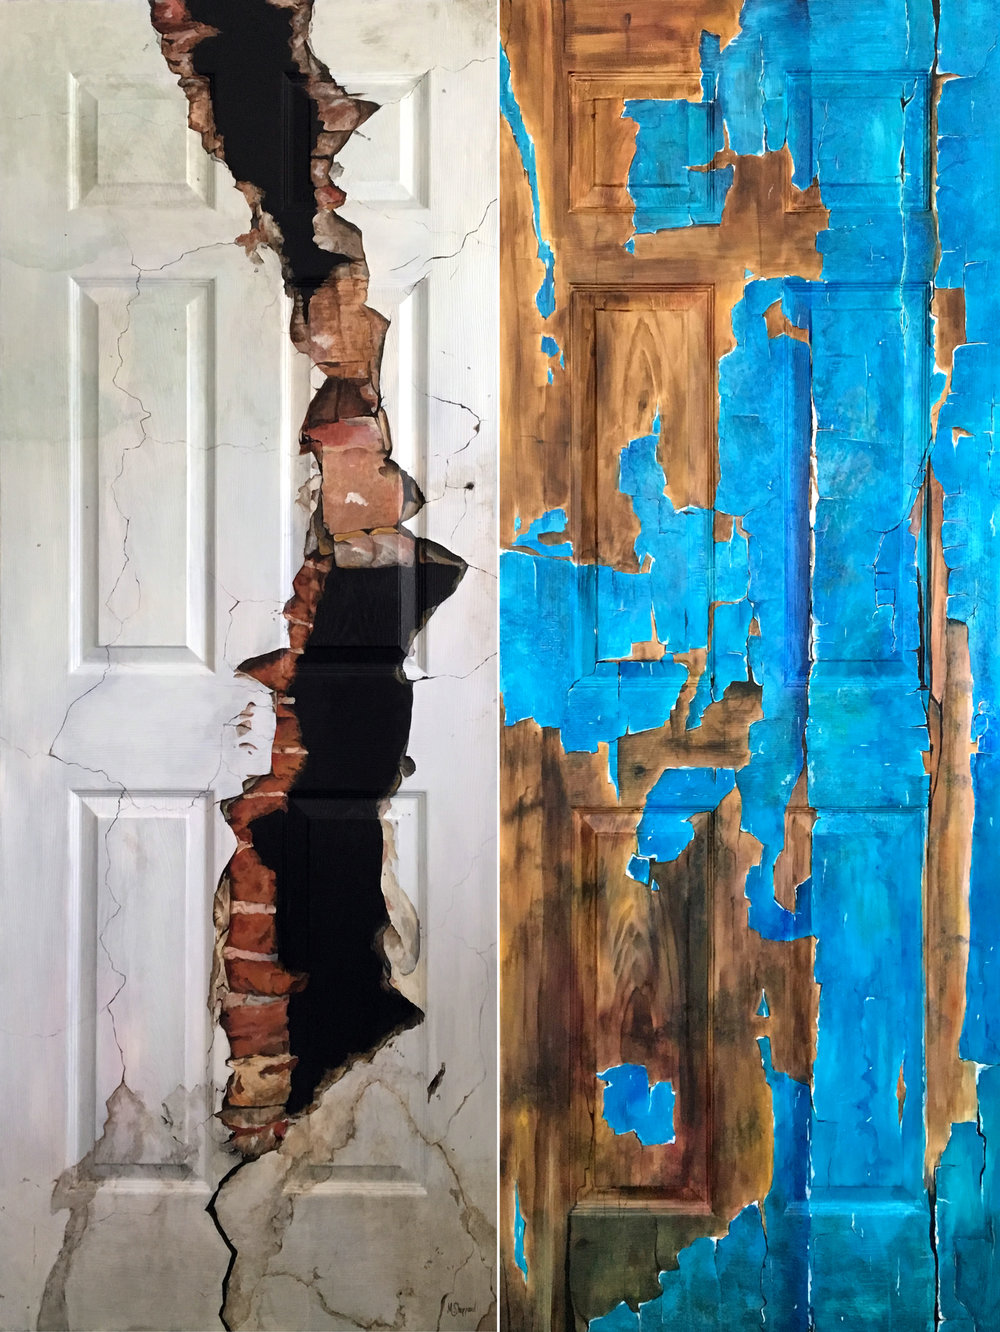 "Two sides of the same 30"" x 80"" door. I love to focus on the details. To me, all the tiny lines and shadows that come together to form something vivid and realistic is immensely satisfying. I invite the viewer to narrow their focus and see the beauty in things that might have otherwise been overlooked."